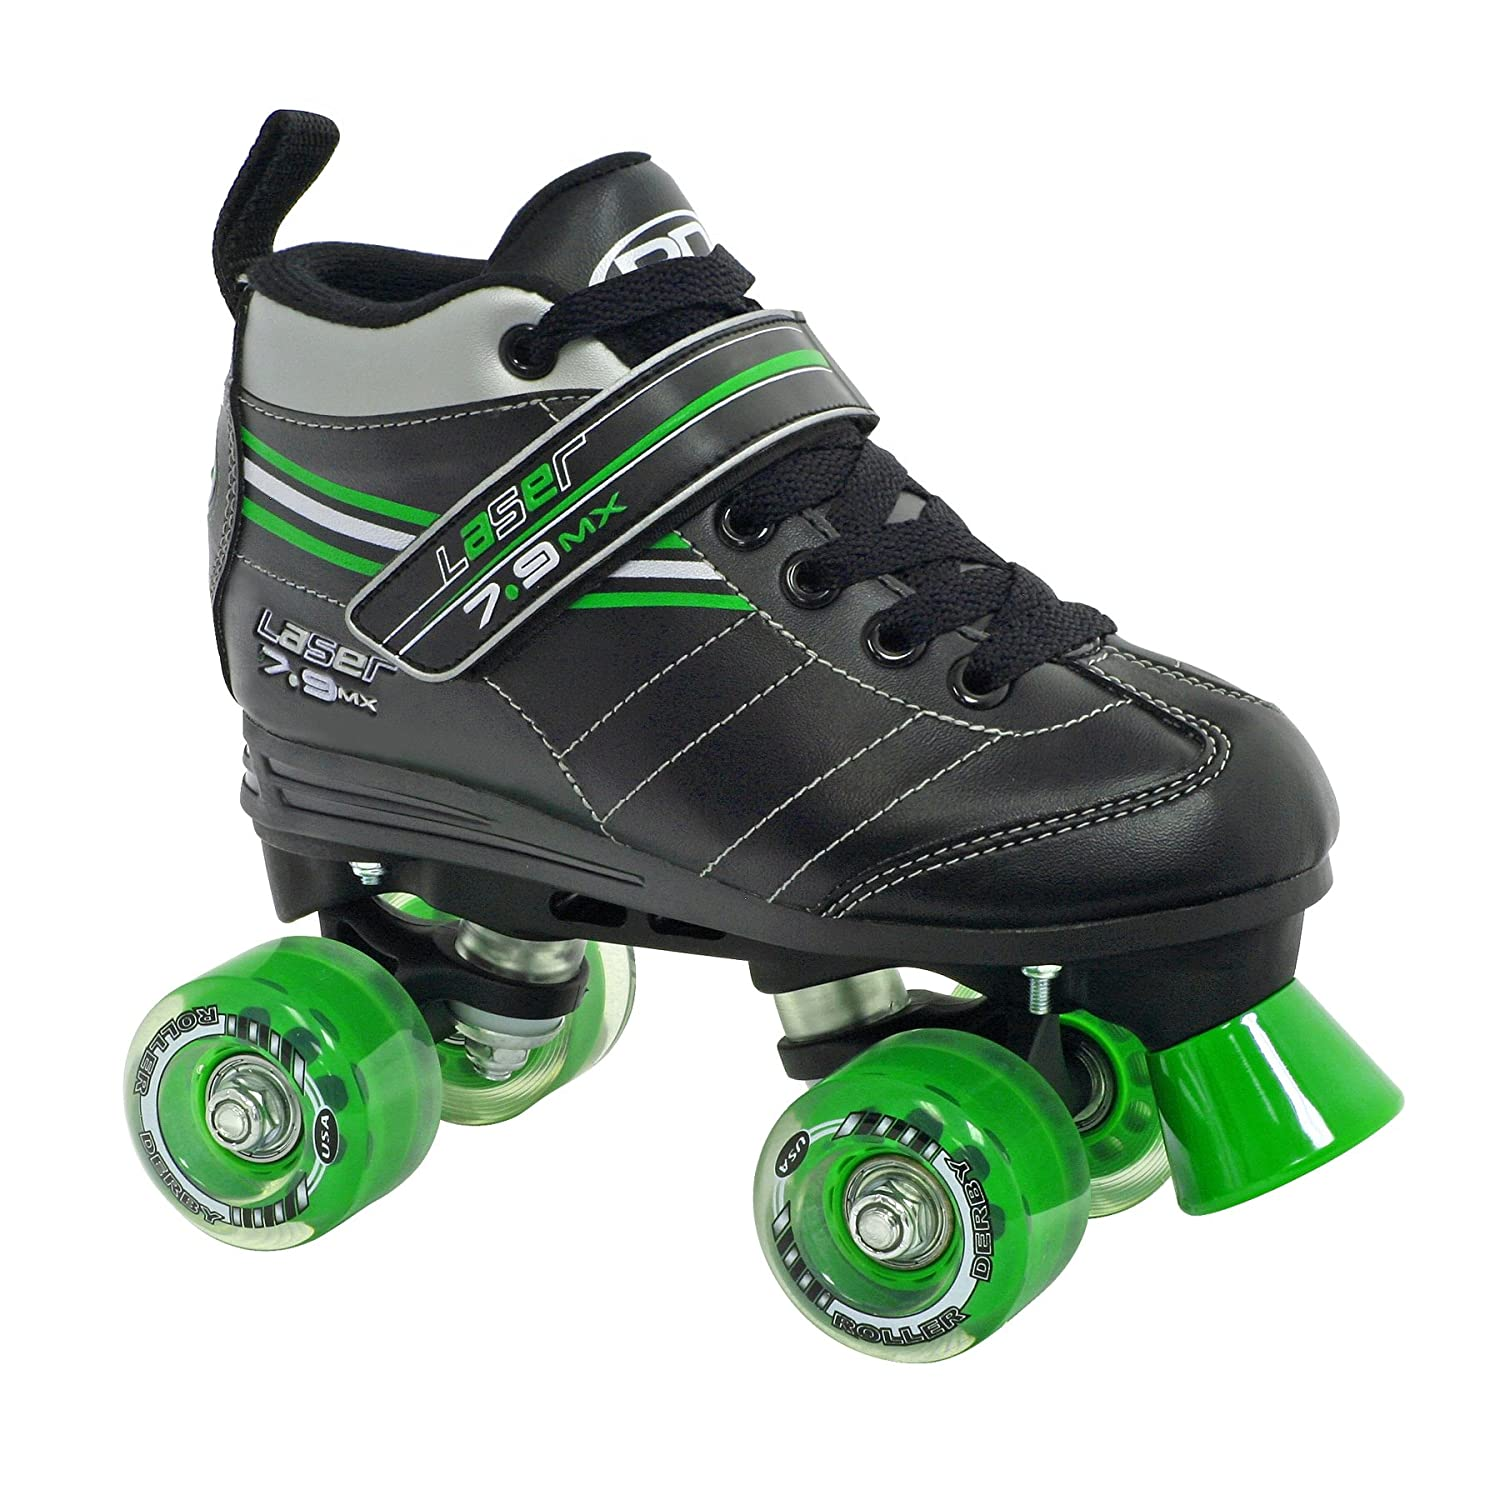 Roller shoes for youth